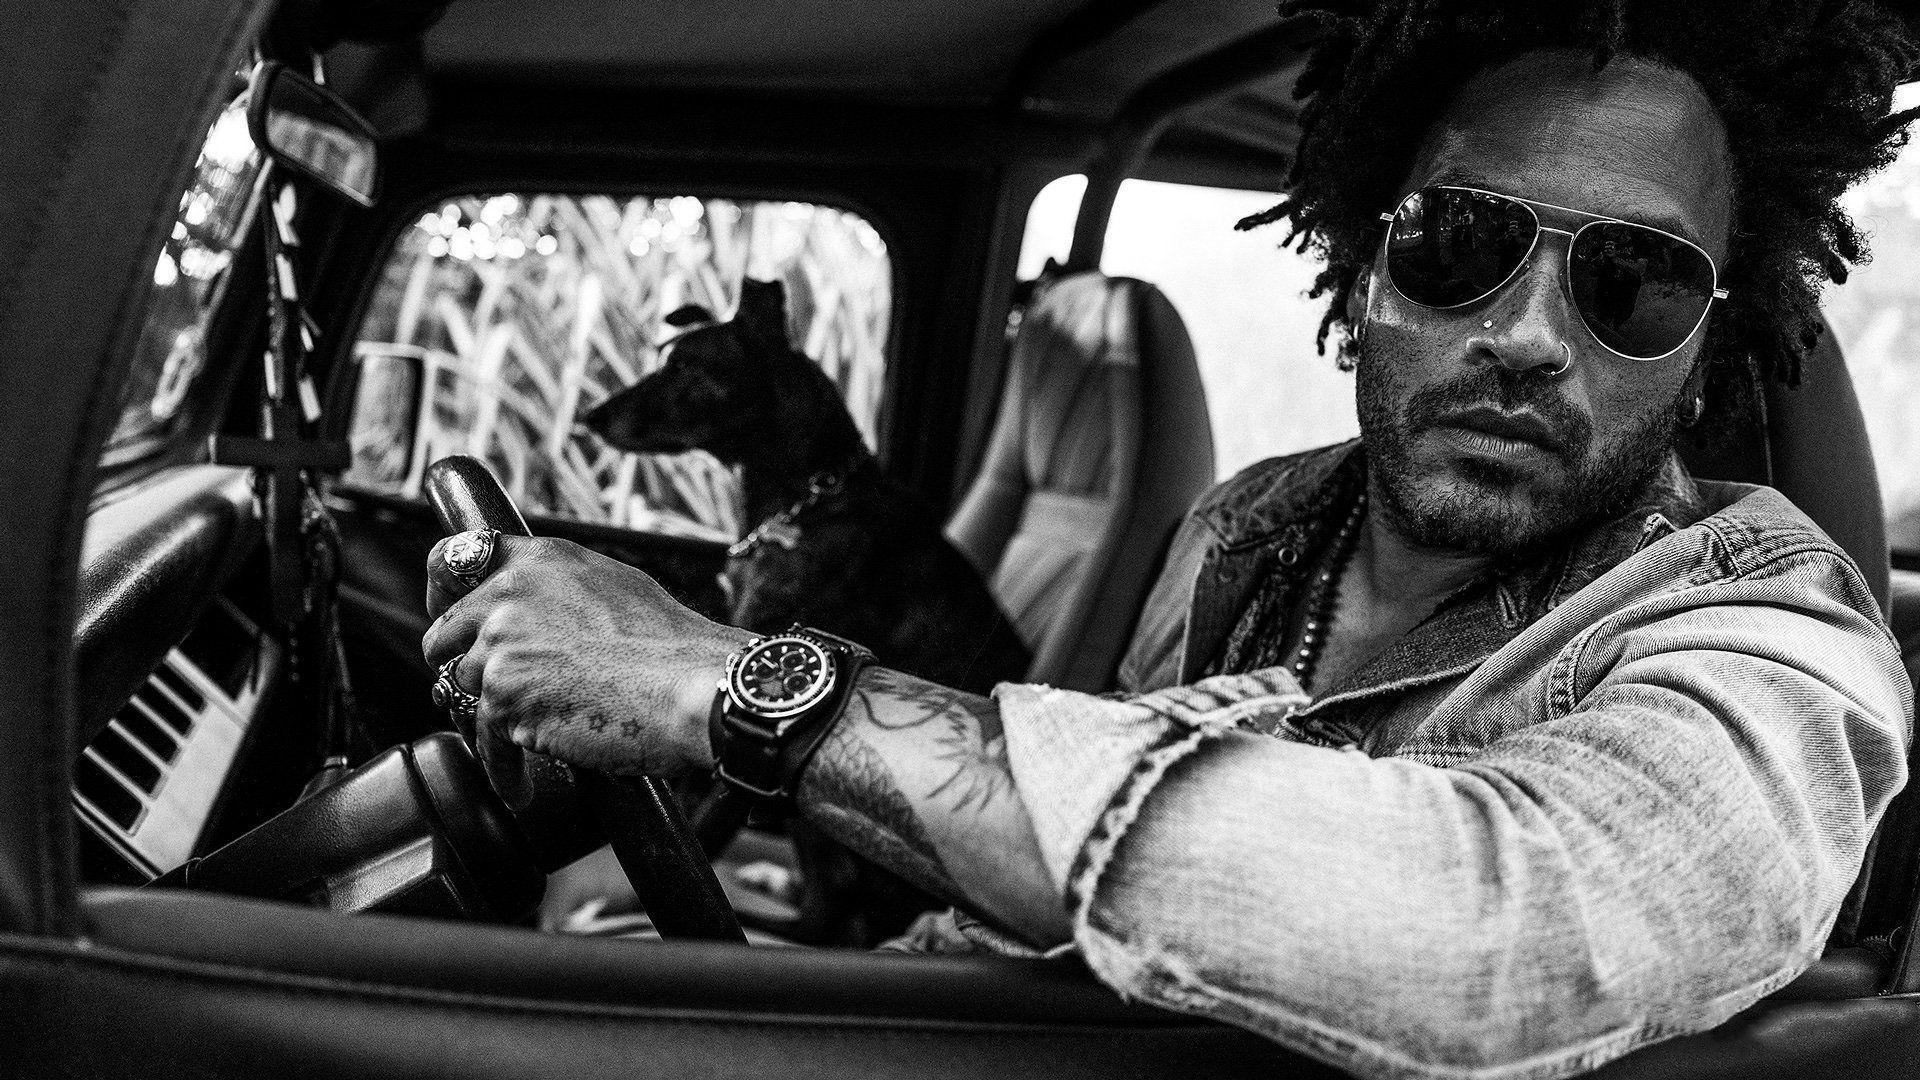 Lenny Kravitz with Dog in his truck